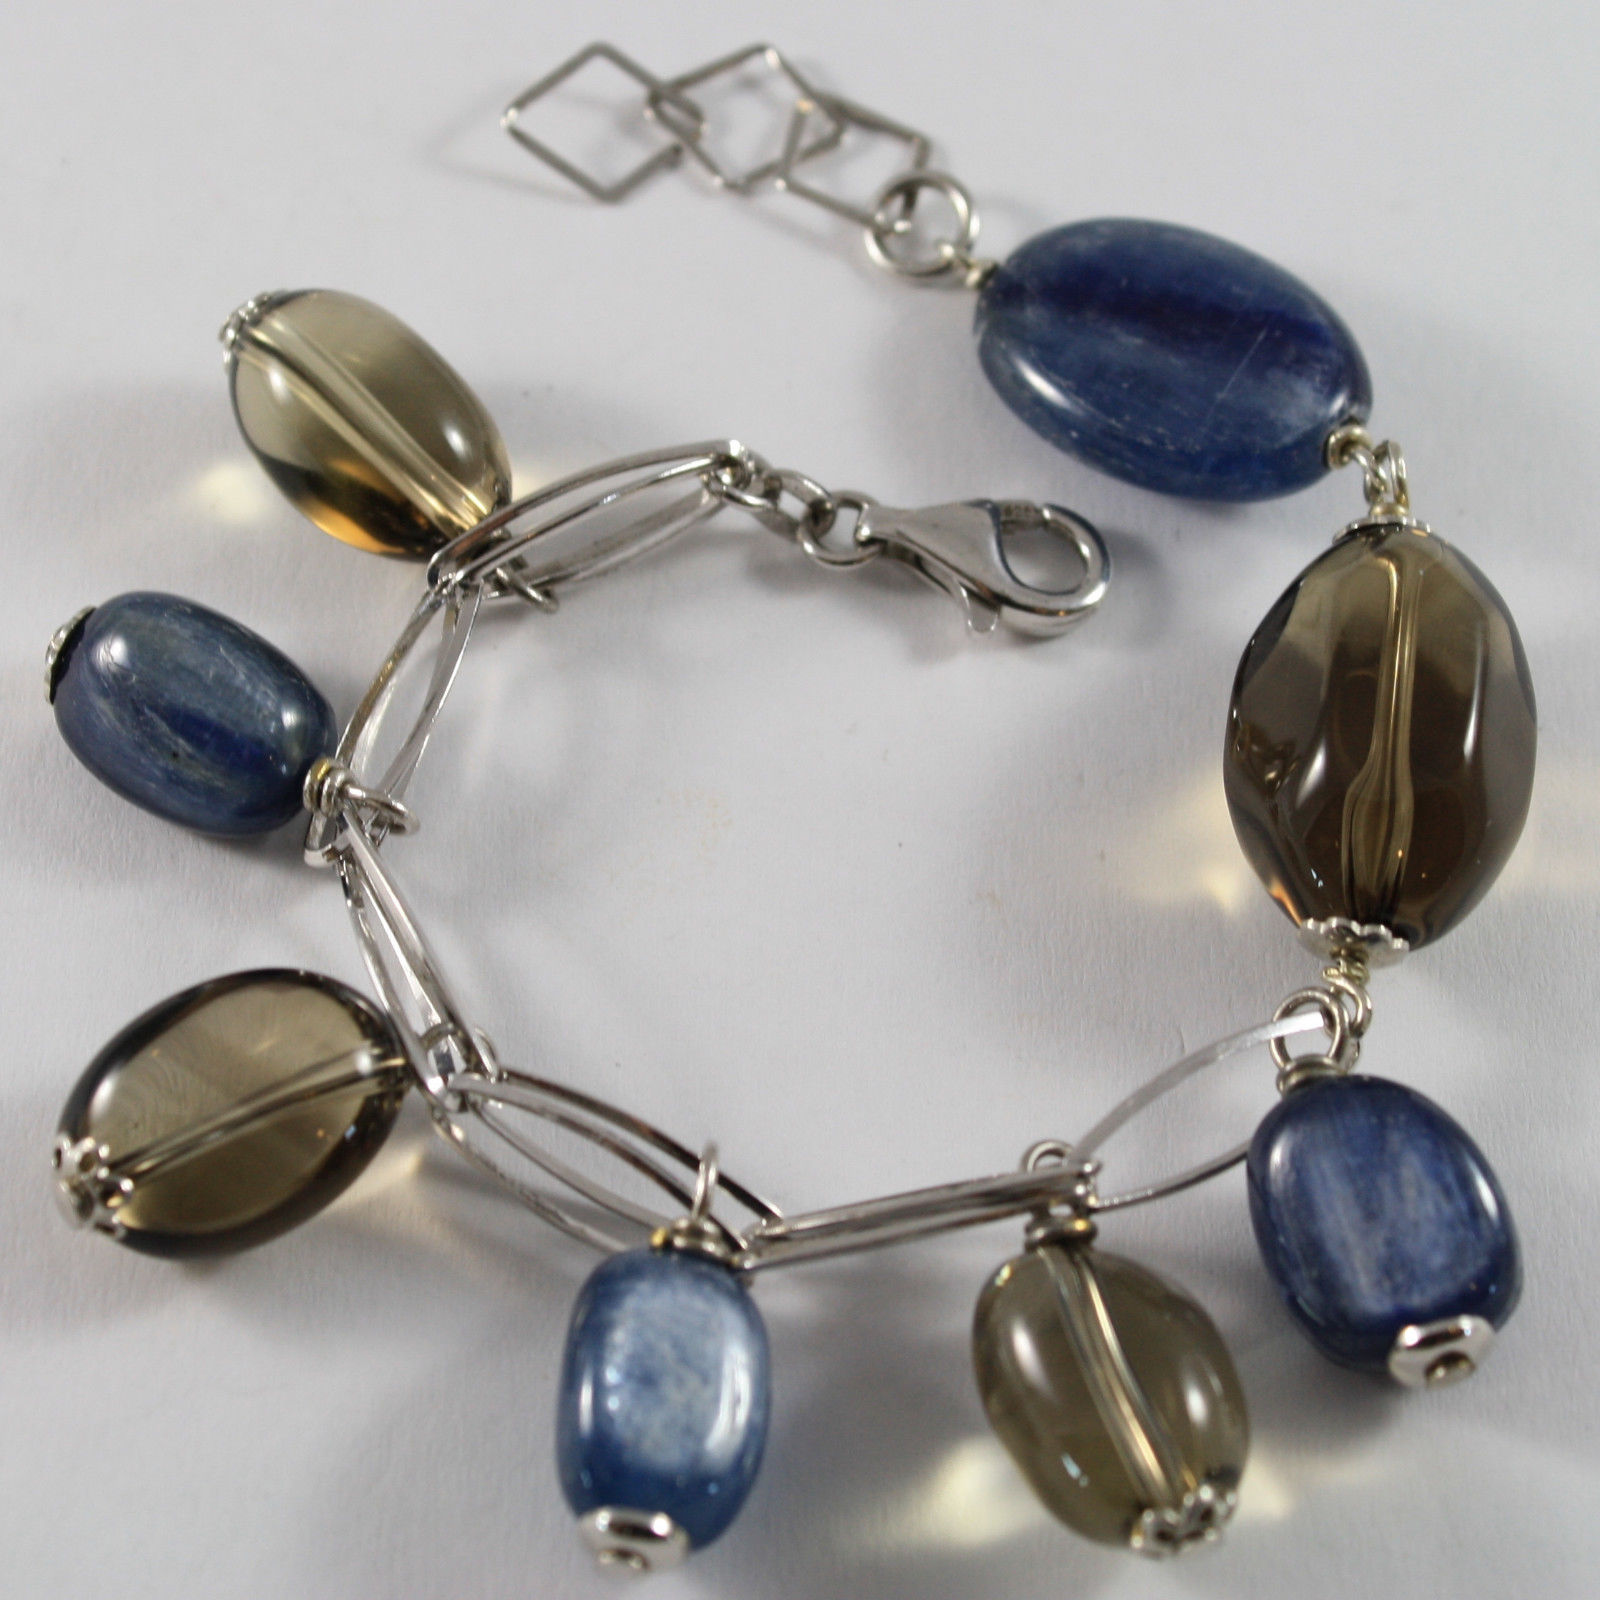 .925 RHODIUM SILVER BRACELET WITH BLUE KYANITE AND LEMON QUARTZ